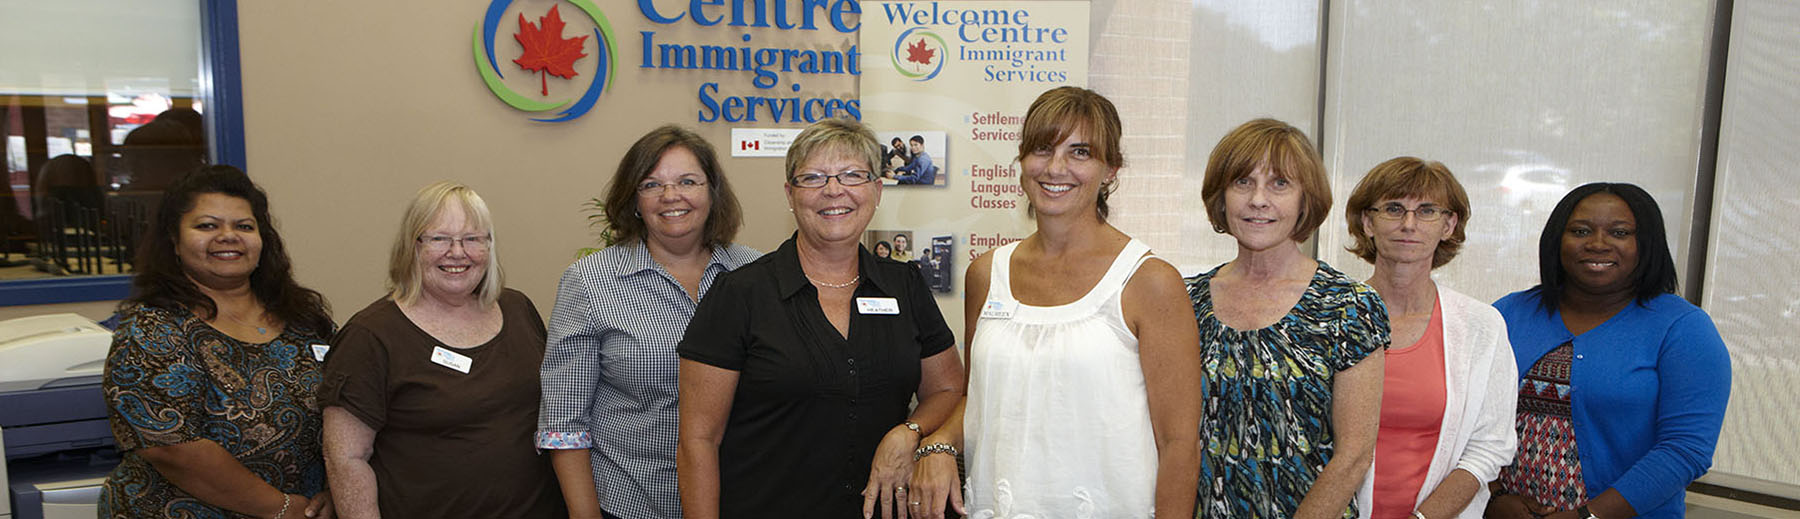 Staff at the Welcome Cente in Pickering